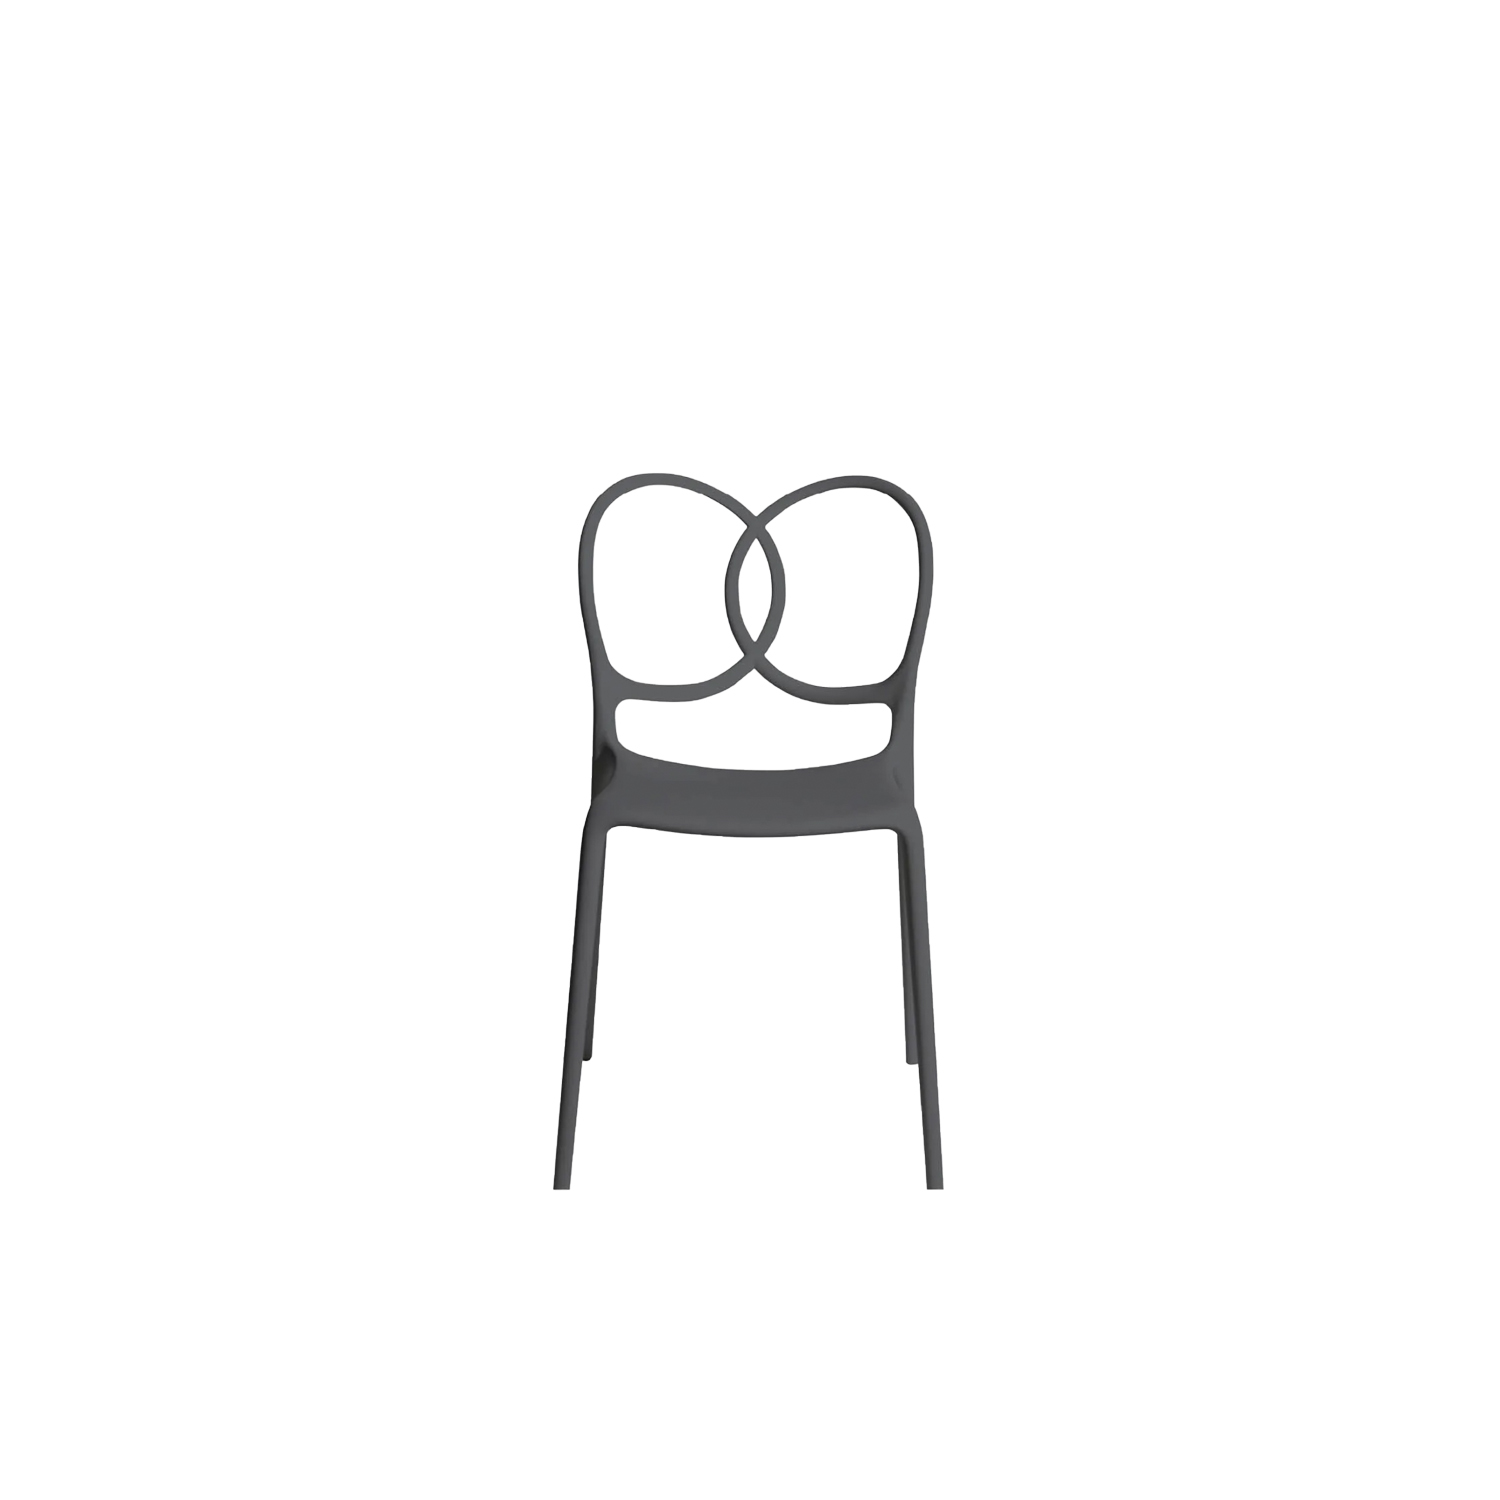 """Sissi Chair - Sissi is a sculptural, very versatile, self- centred and contemporary piece. """"Its modern design winks cheekily at the past and at the female world. The merging and intersecting rings look as if they have been bent by the hand of the viennese craftsmen, whom since over a century ago, would offer the world an elegant and design archetype. The connections, linked in such a sensual way, turn sissi into a refined and sculptural piece, just like the ultimate viennese chair - famous for its wooden curves- it is inspired by. Just like a confident, self-assured women changes her clothes to suit her mood, this chair is complemented by an essential part of its design, the seat cover.""""Ludovica and Roberto Palomba.  The material with which this collection is made derives from industrial recycling coming from internal production waste, and therefore controlled, and from post-consumer recycling, that is from products disposed of with separate collection - such as PET bottles and containers, for instance - and recycled, thus giving life to new objects.  All the seats made with this material are characterized by neutral colors - such as black in particular - which makes them homogeneous. 